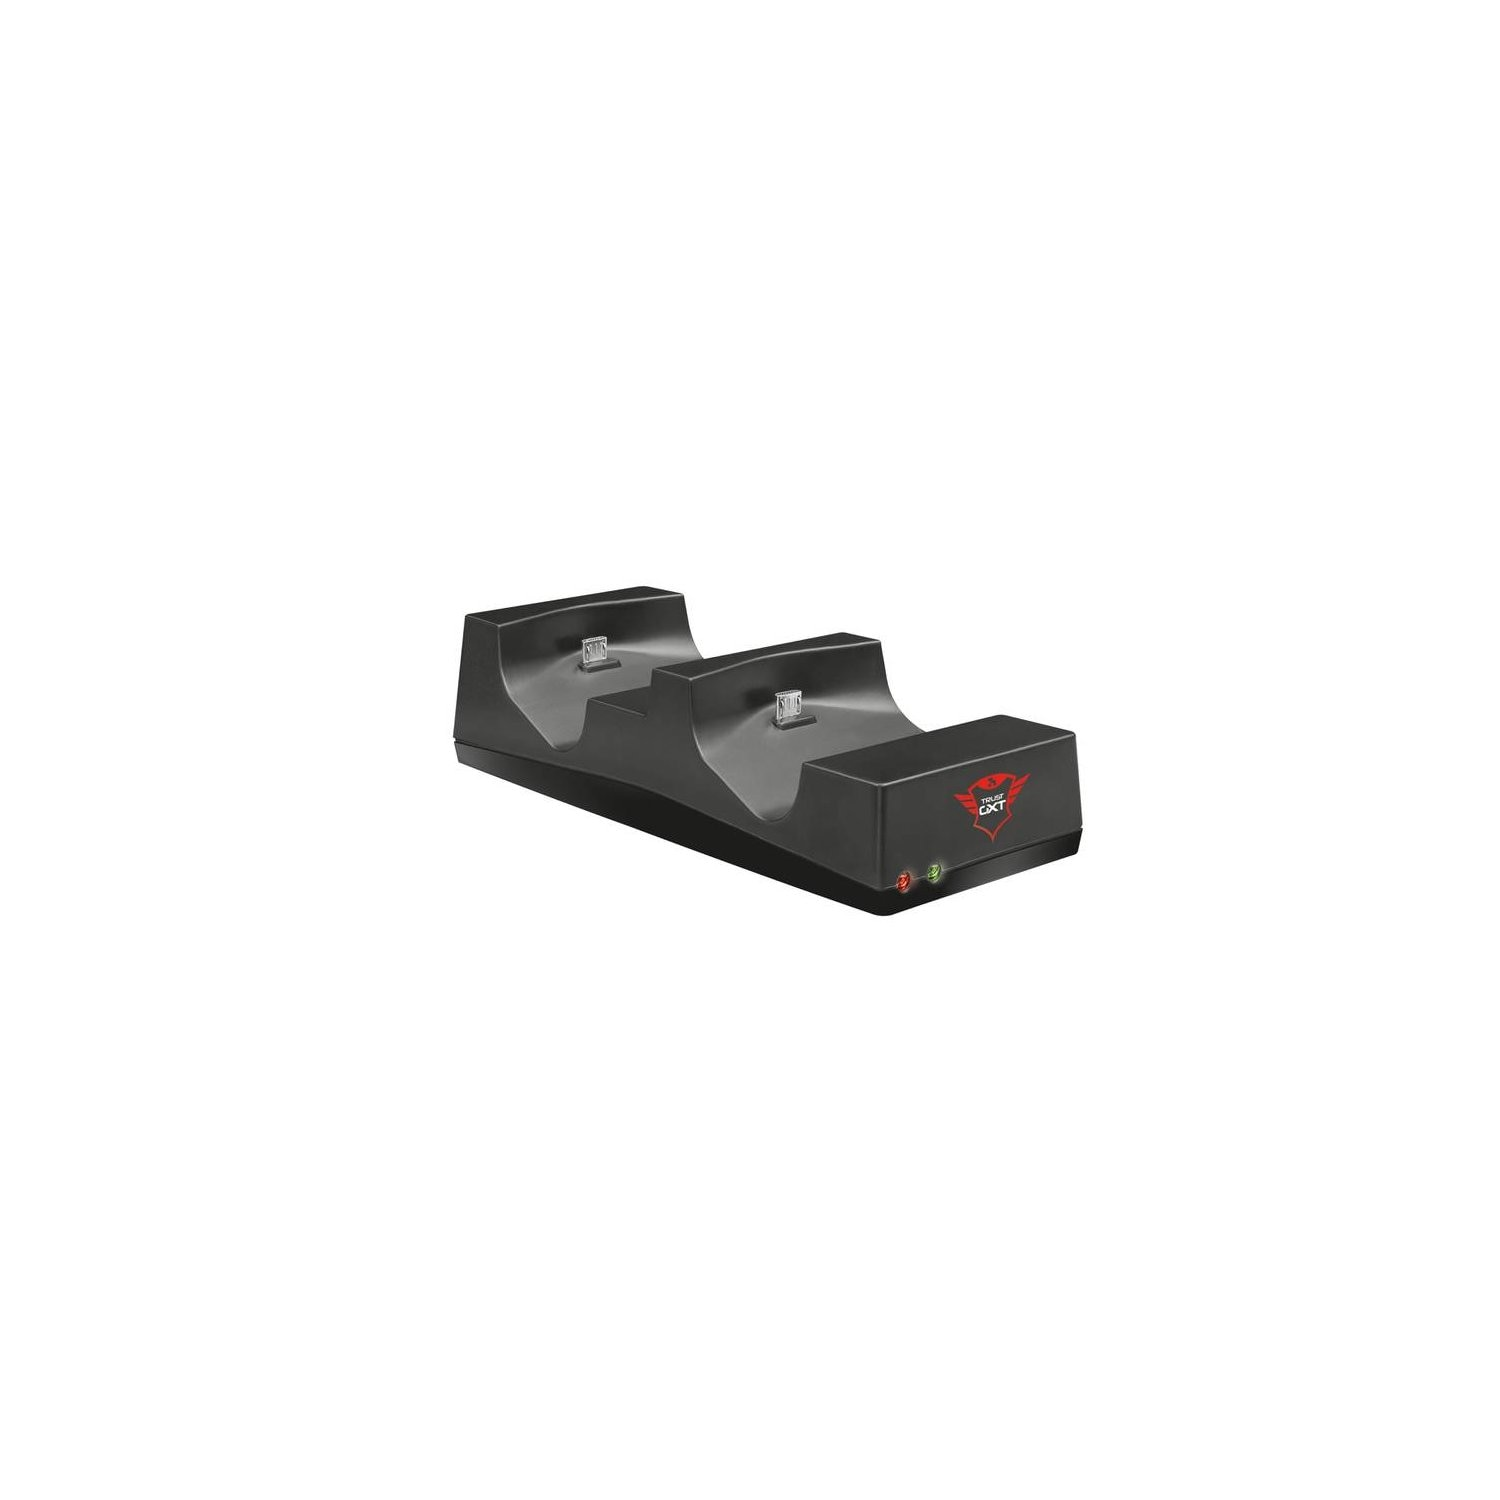 Stacja ładująca TRUST GXT 235 Duo Charging Dock do PS4